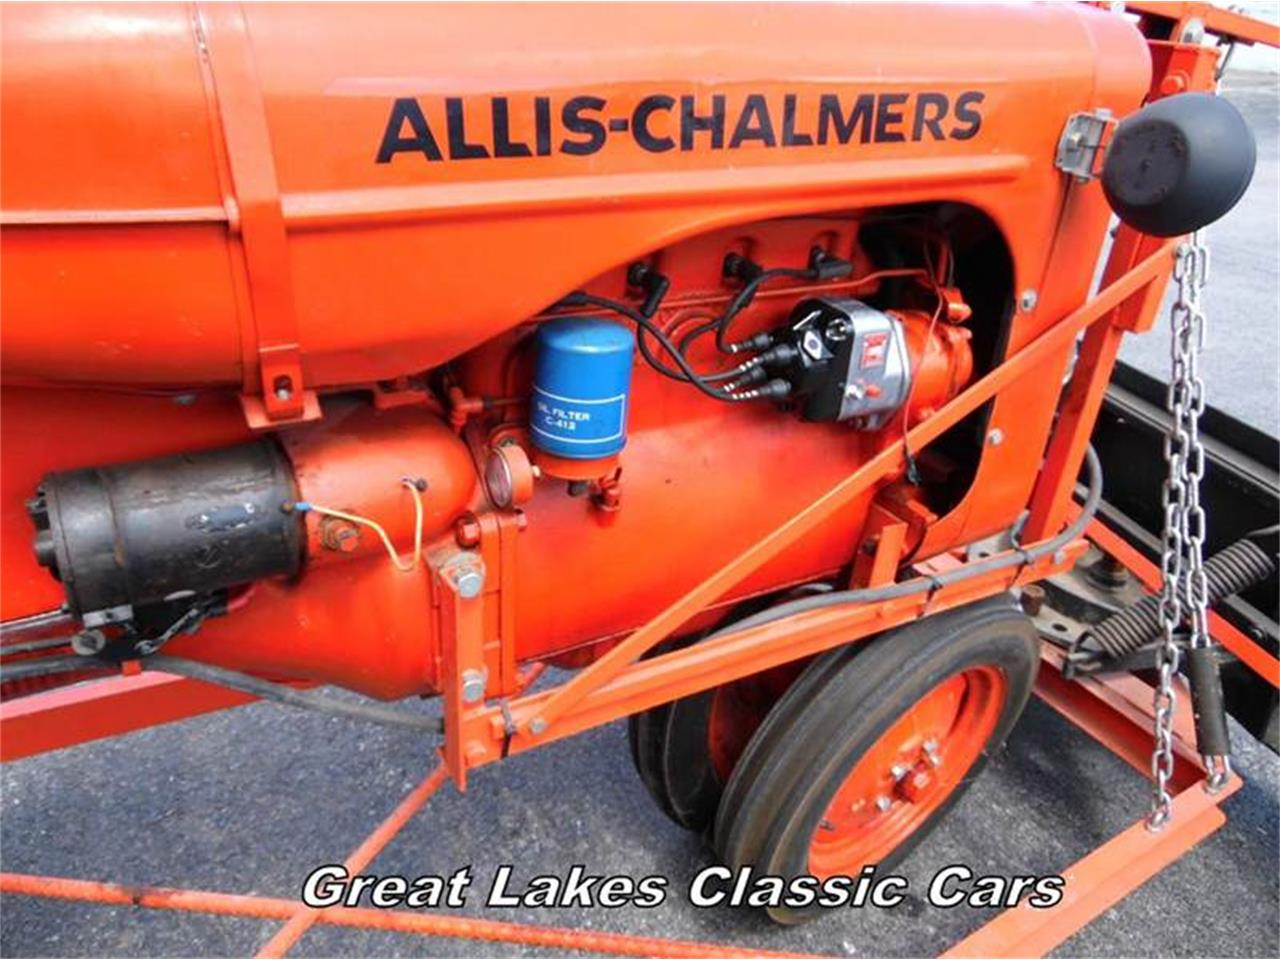 Large Picture of '41 Allis Chalmers D - $2,495.00 Offered by Great Lakes Classic Cars - HTLI